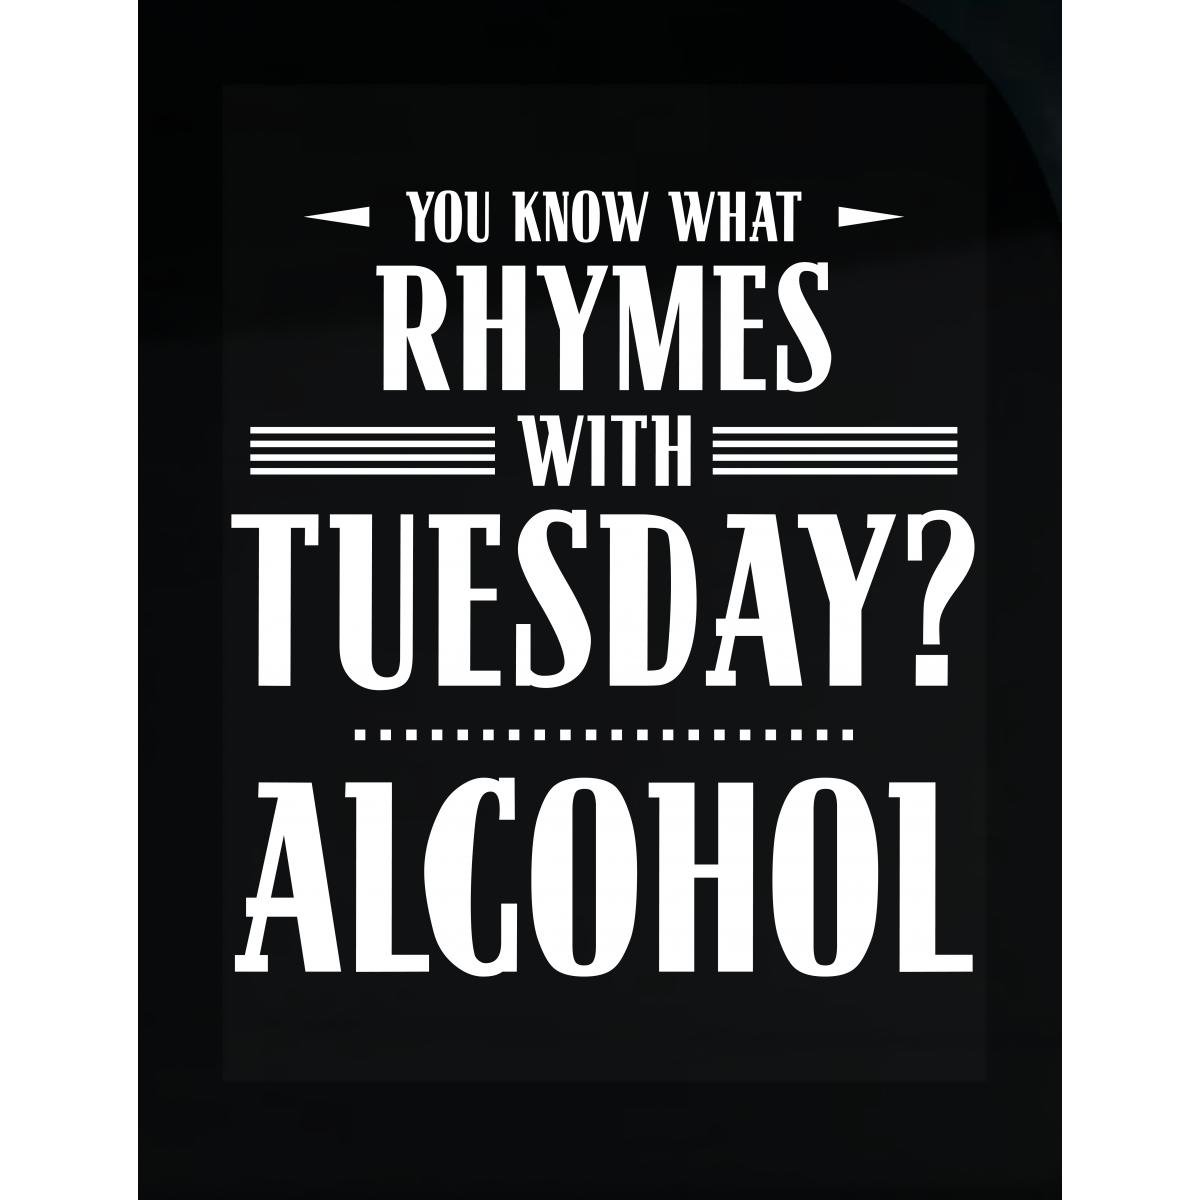 Amazon.com: You Know What Rhymes With Tuesday? Alcohol - Sticker ...